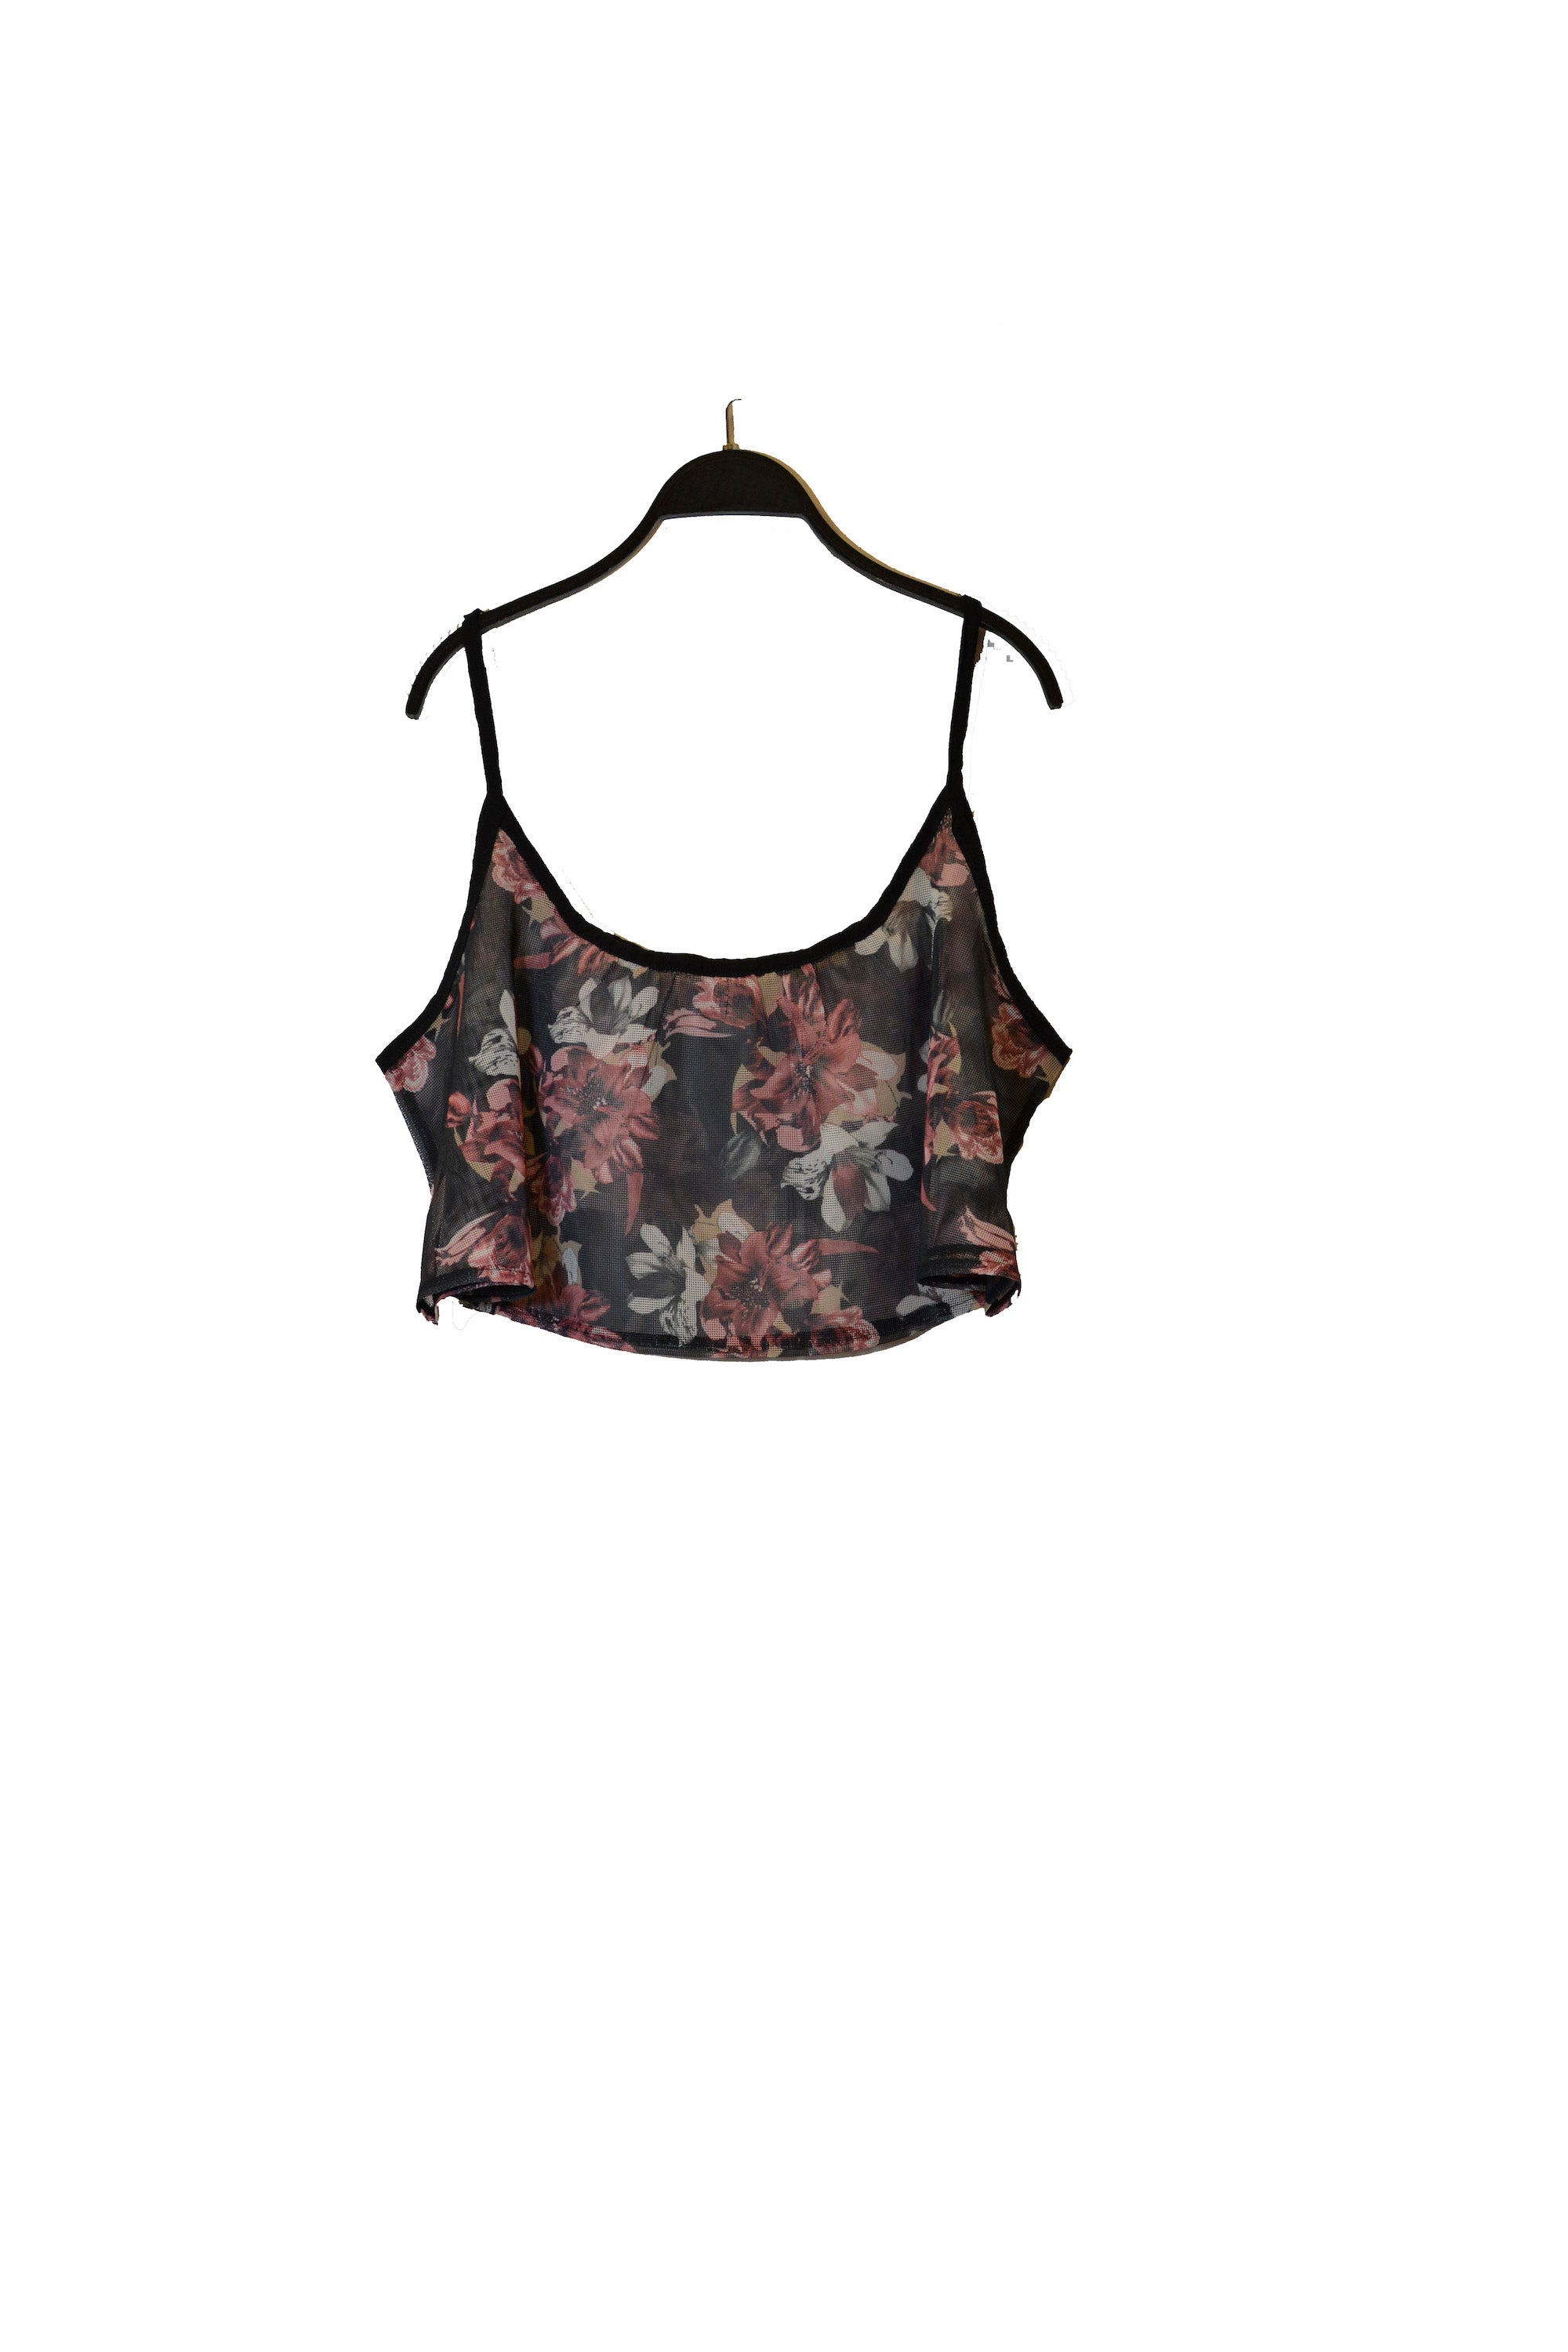 Black Floral Crop Top With Spaghetti Straps